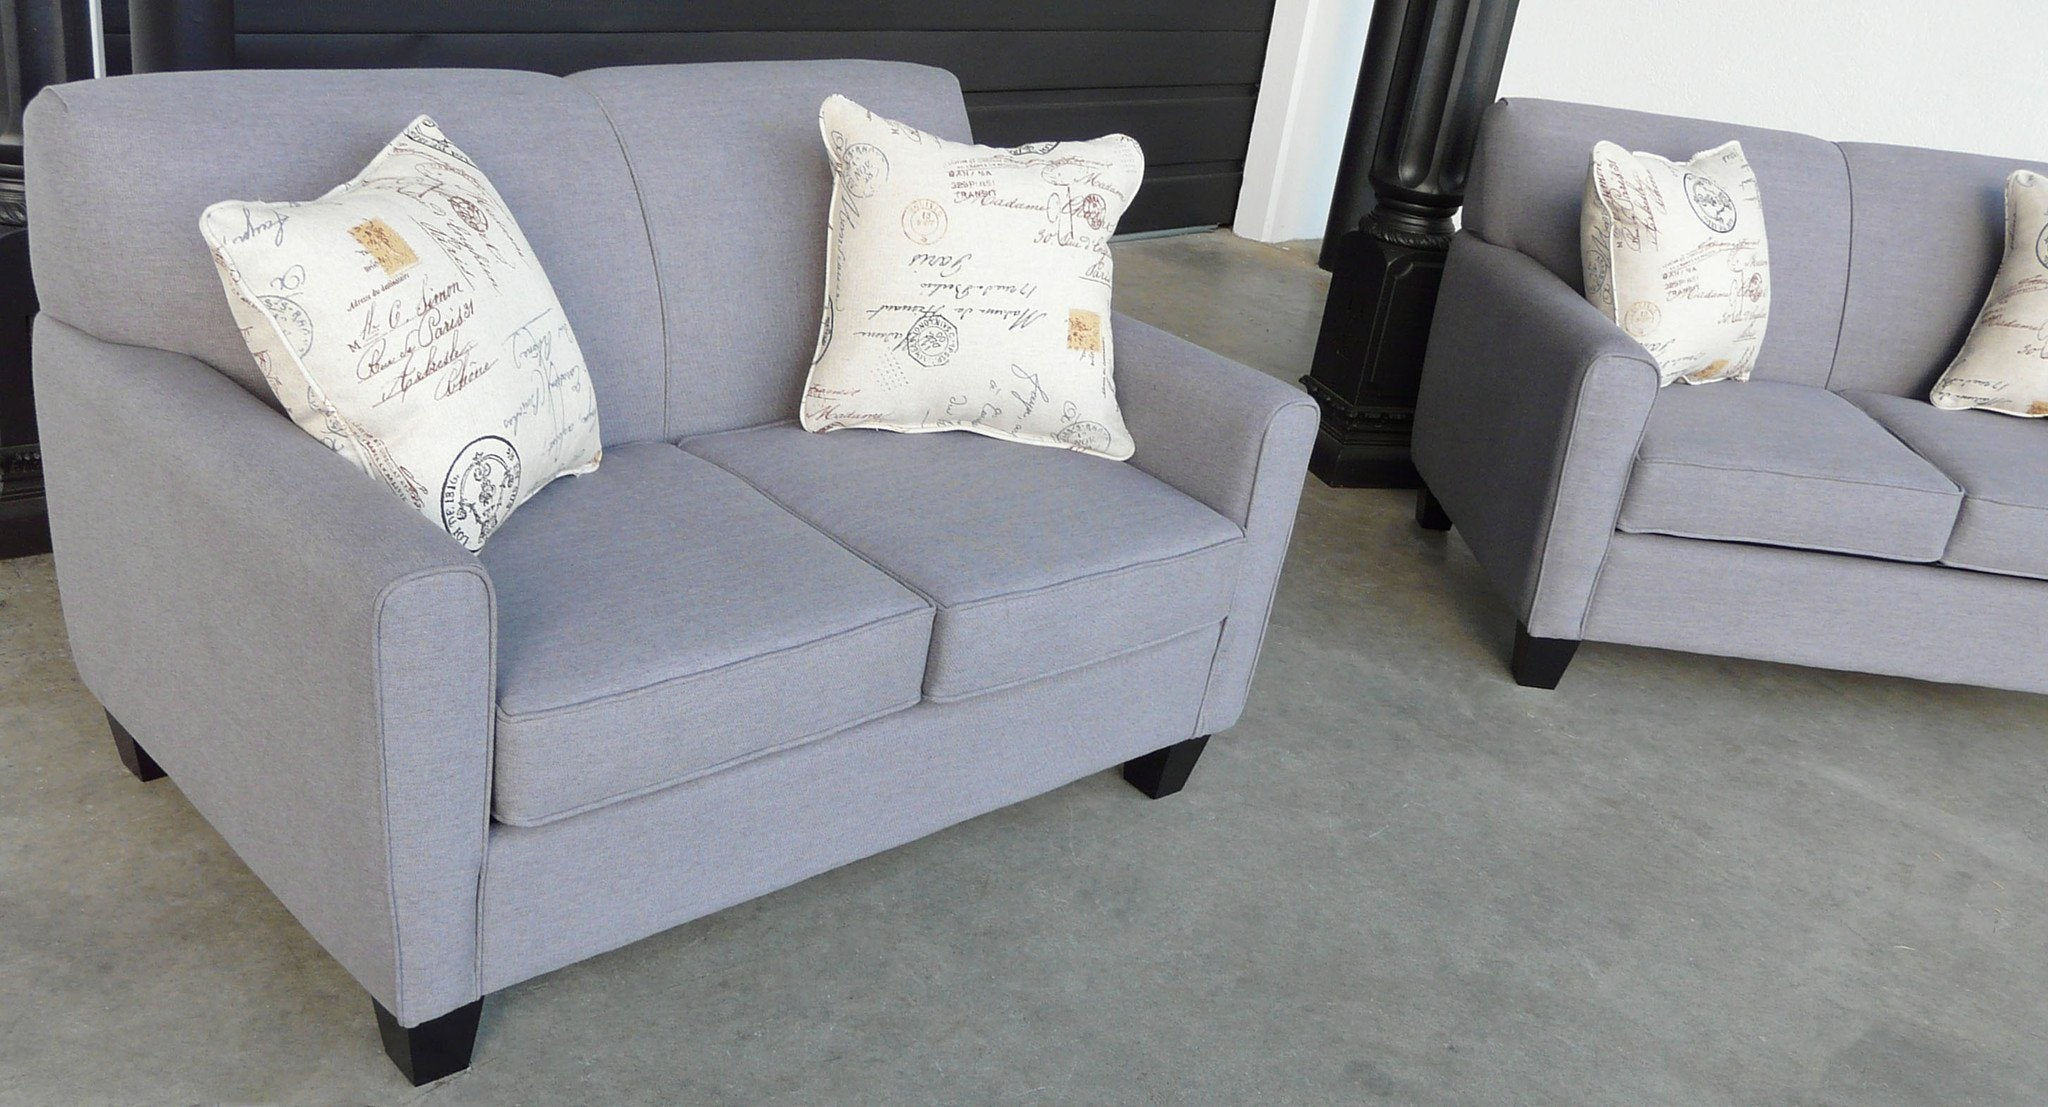 Boxer Single Sofabed - Calgary Furniture